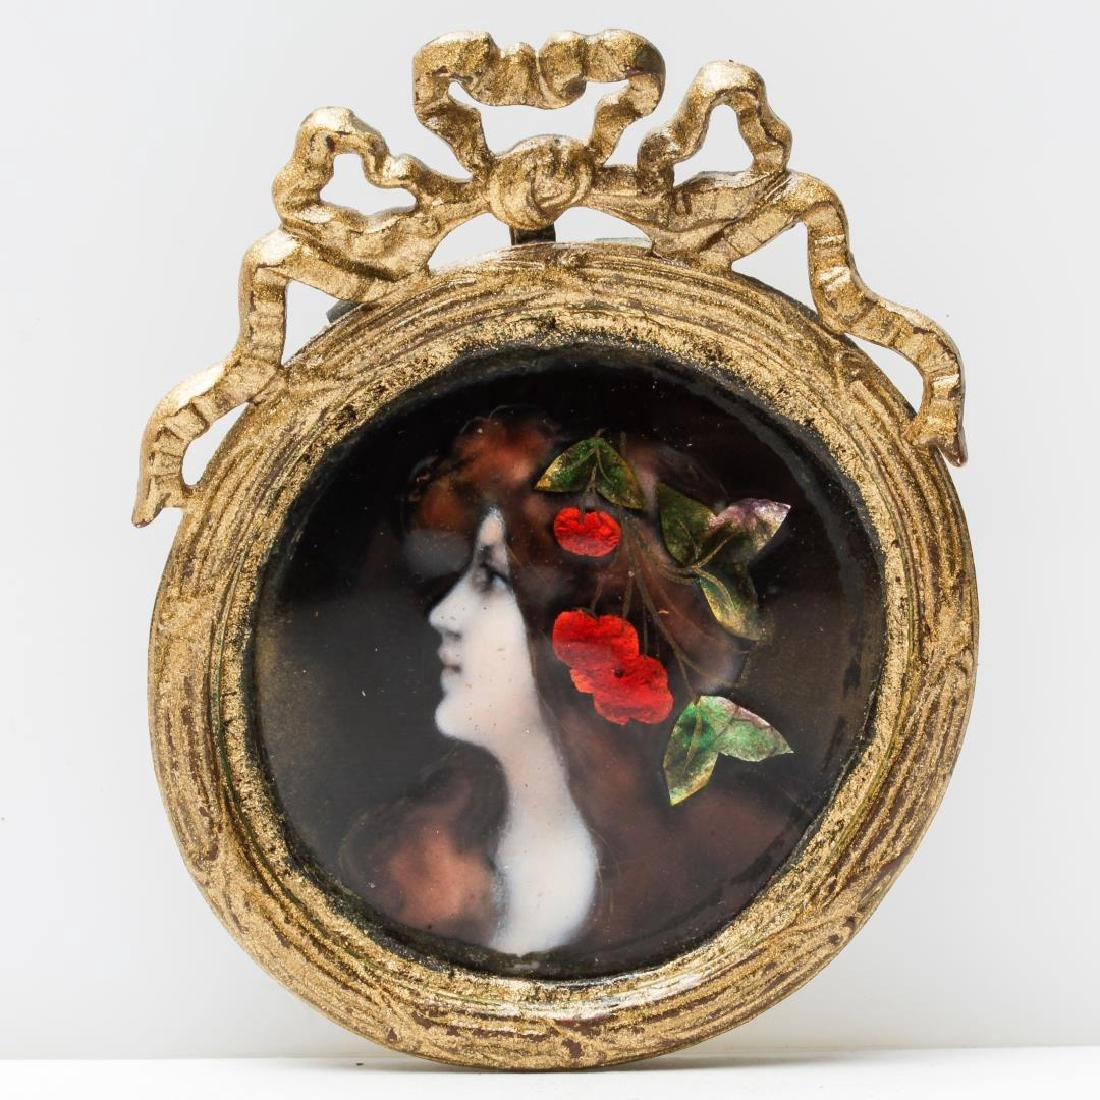 Antique Enamel Portrait Pendant, Likely Edwardian